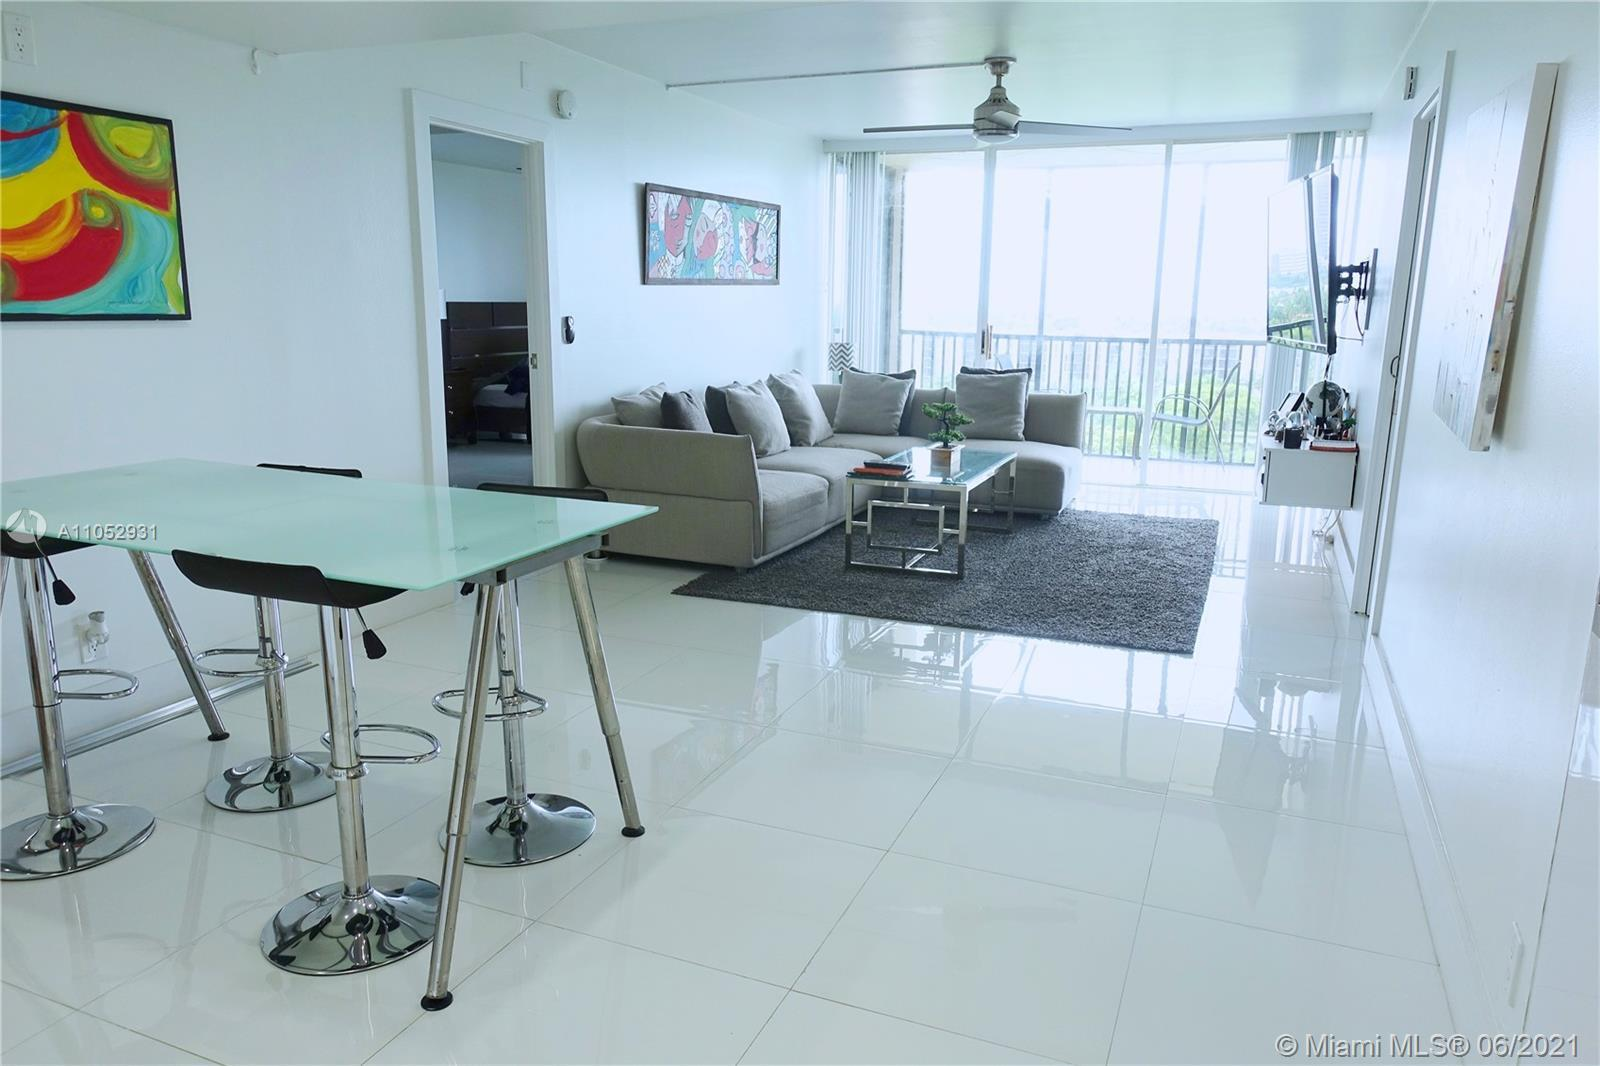 Live the life of your DREAMS with this OUTSTANDING 2/2 DELUXE CONDO, Unit offers the ultimate in lux